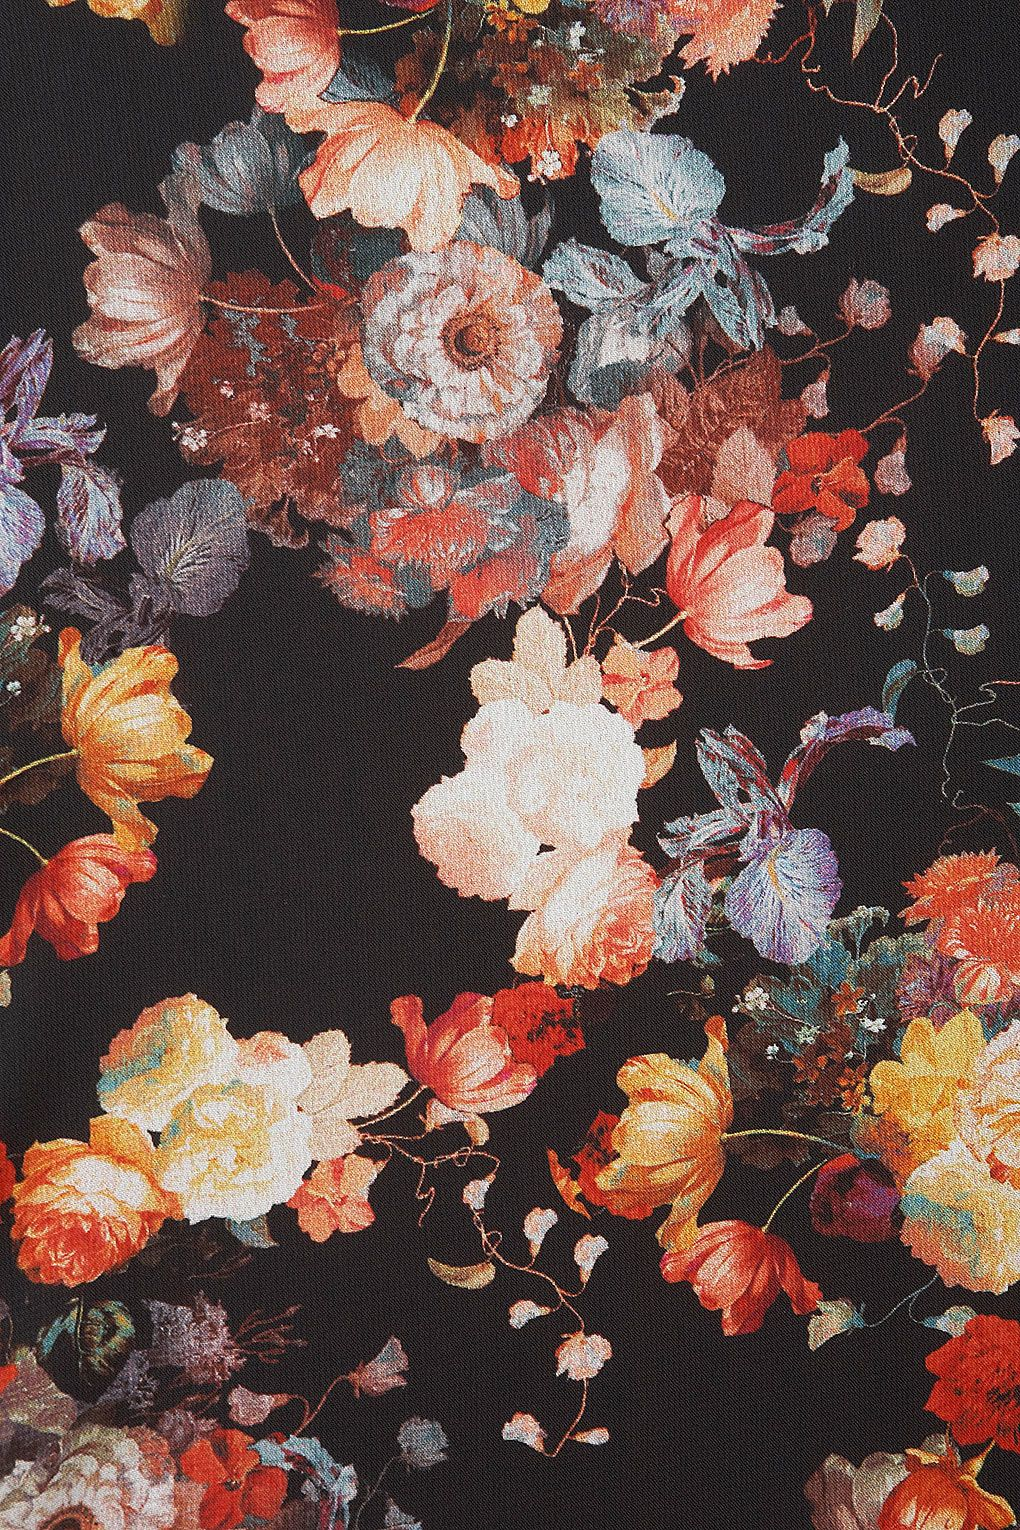 Vintage floral iphone wallpaper tumblr - L Dark Floral Pattern